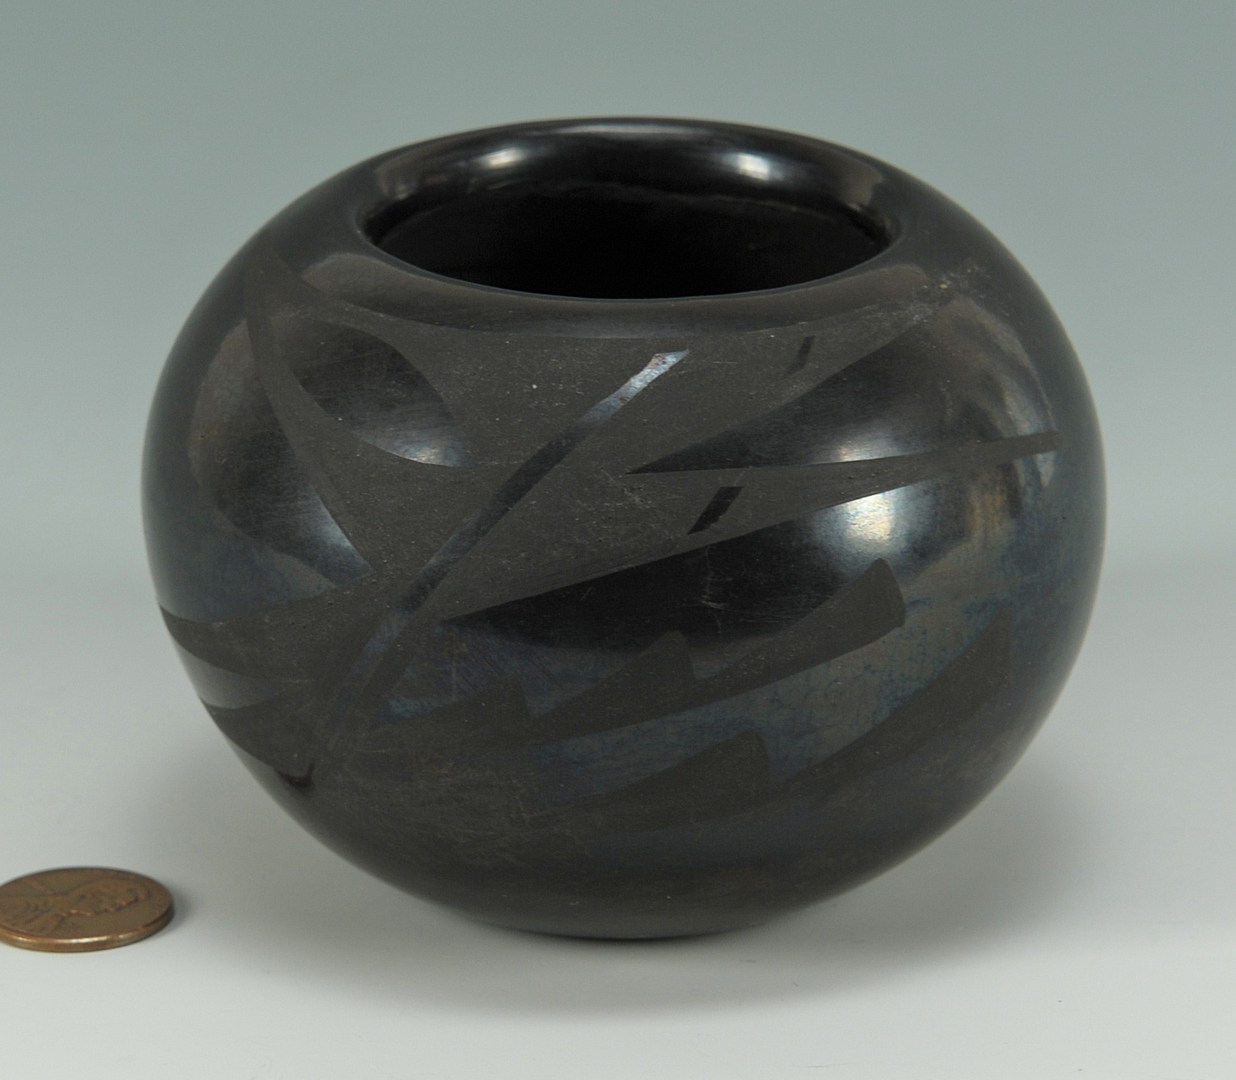 Lot 395: San Ildefonso blackware bowl, Blue Corn